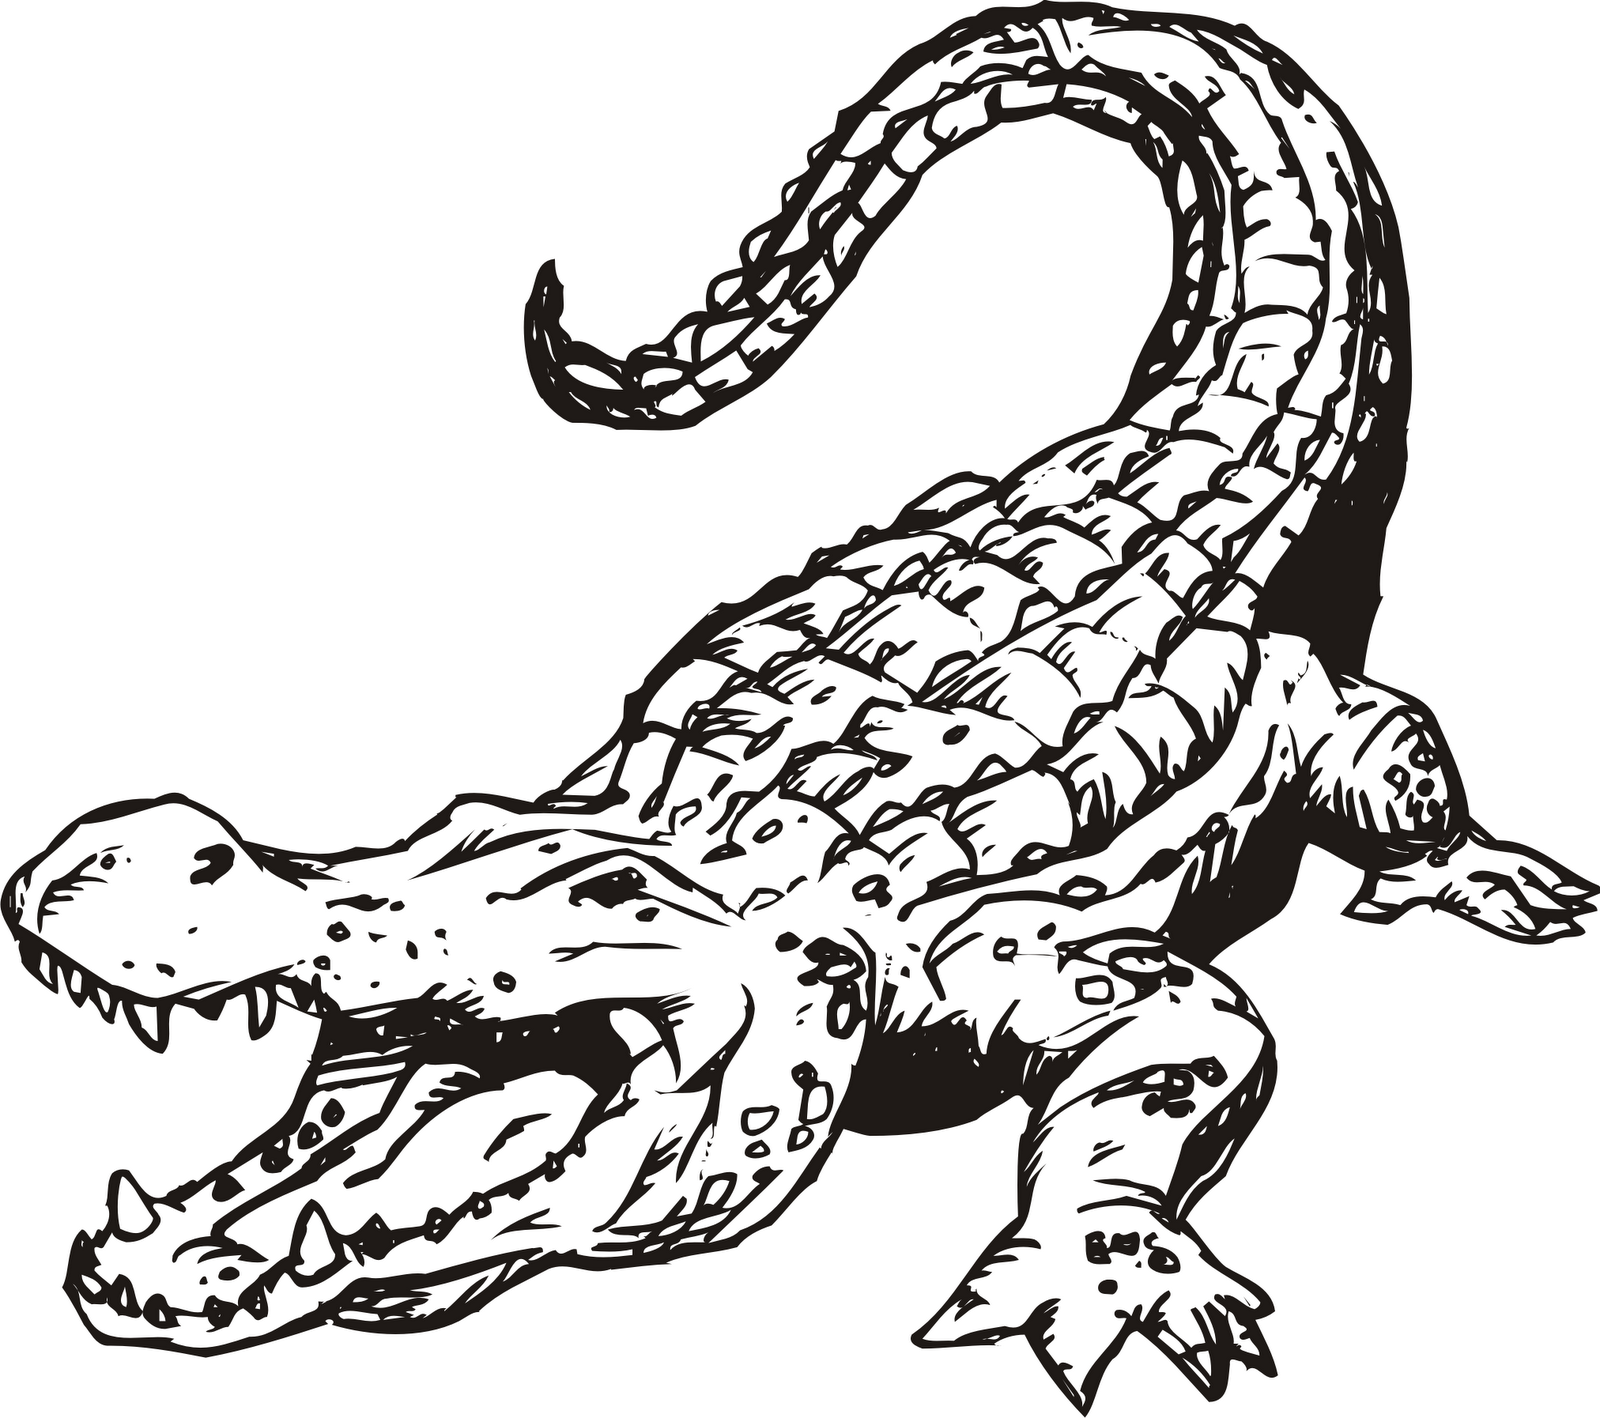 Crocodile free alligator clipart clip ar-Crocodile free alligator clipart clip art pictures graphics - Clipartix-17